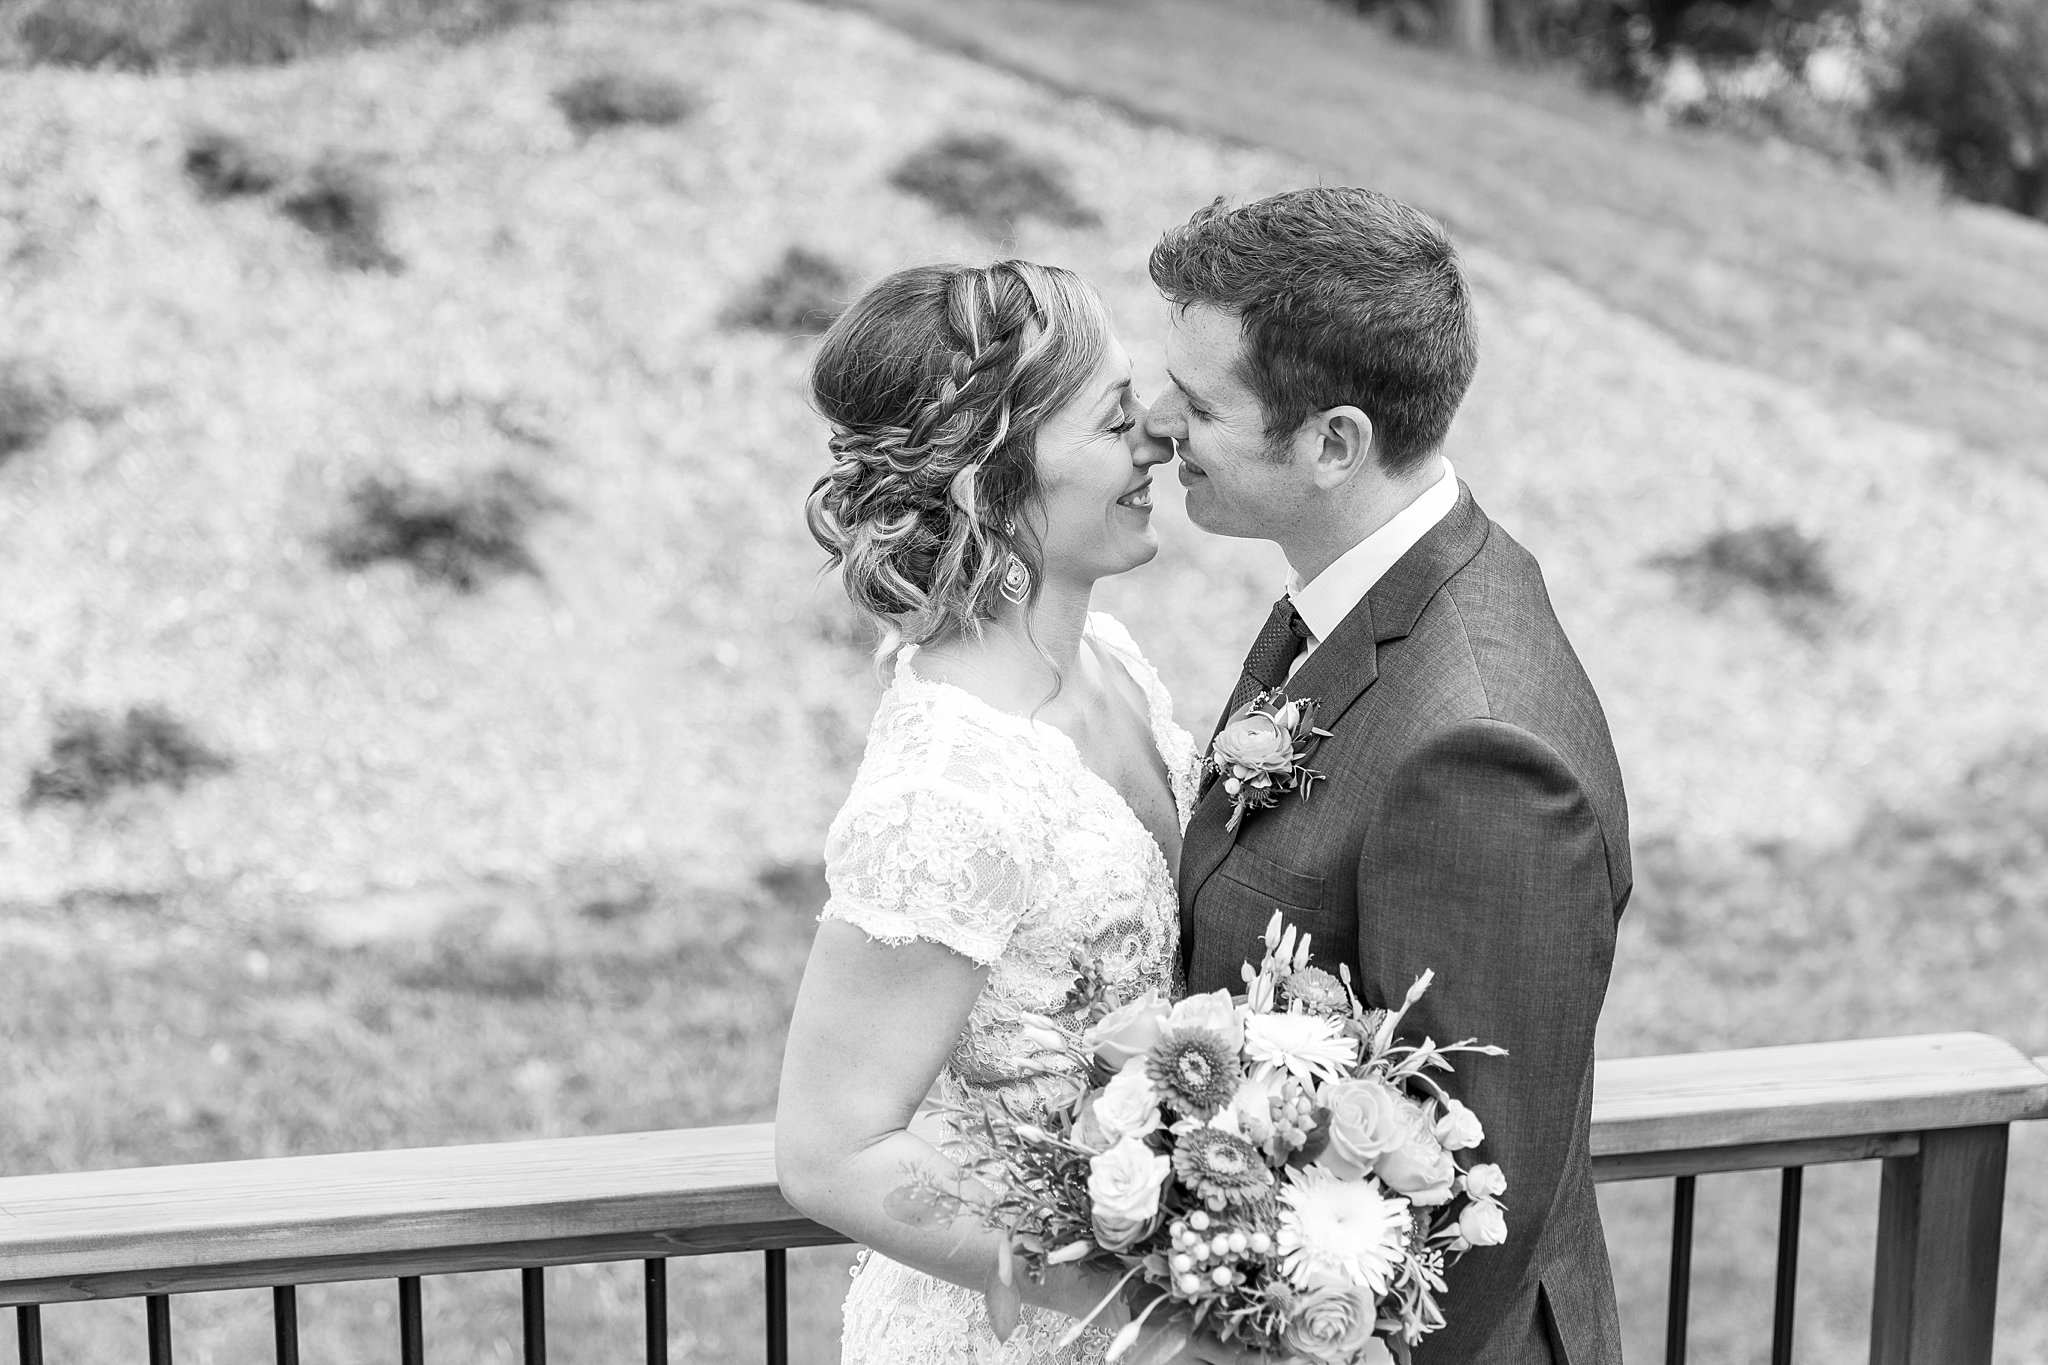 private-lakefront-estate-wedding-photography-in-ann-arbor-michigan-by-courtney-carolyn-photography_0013.jpg